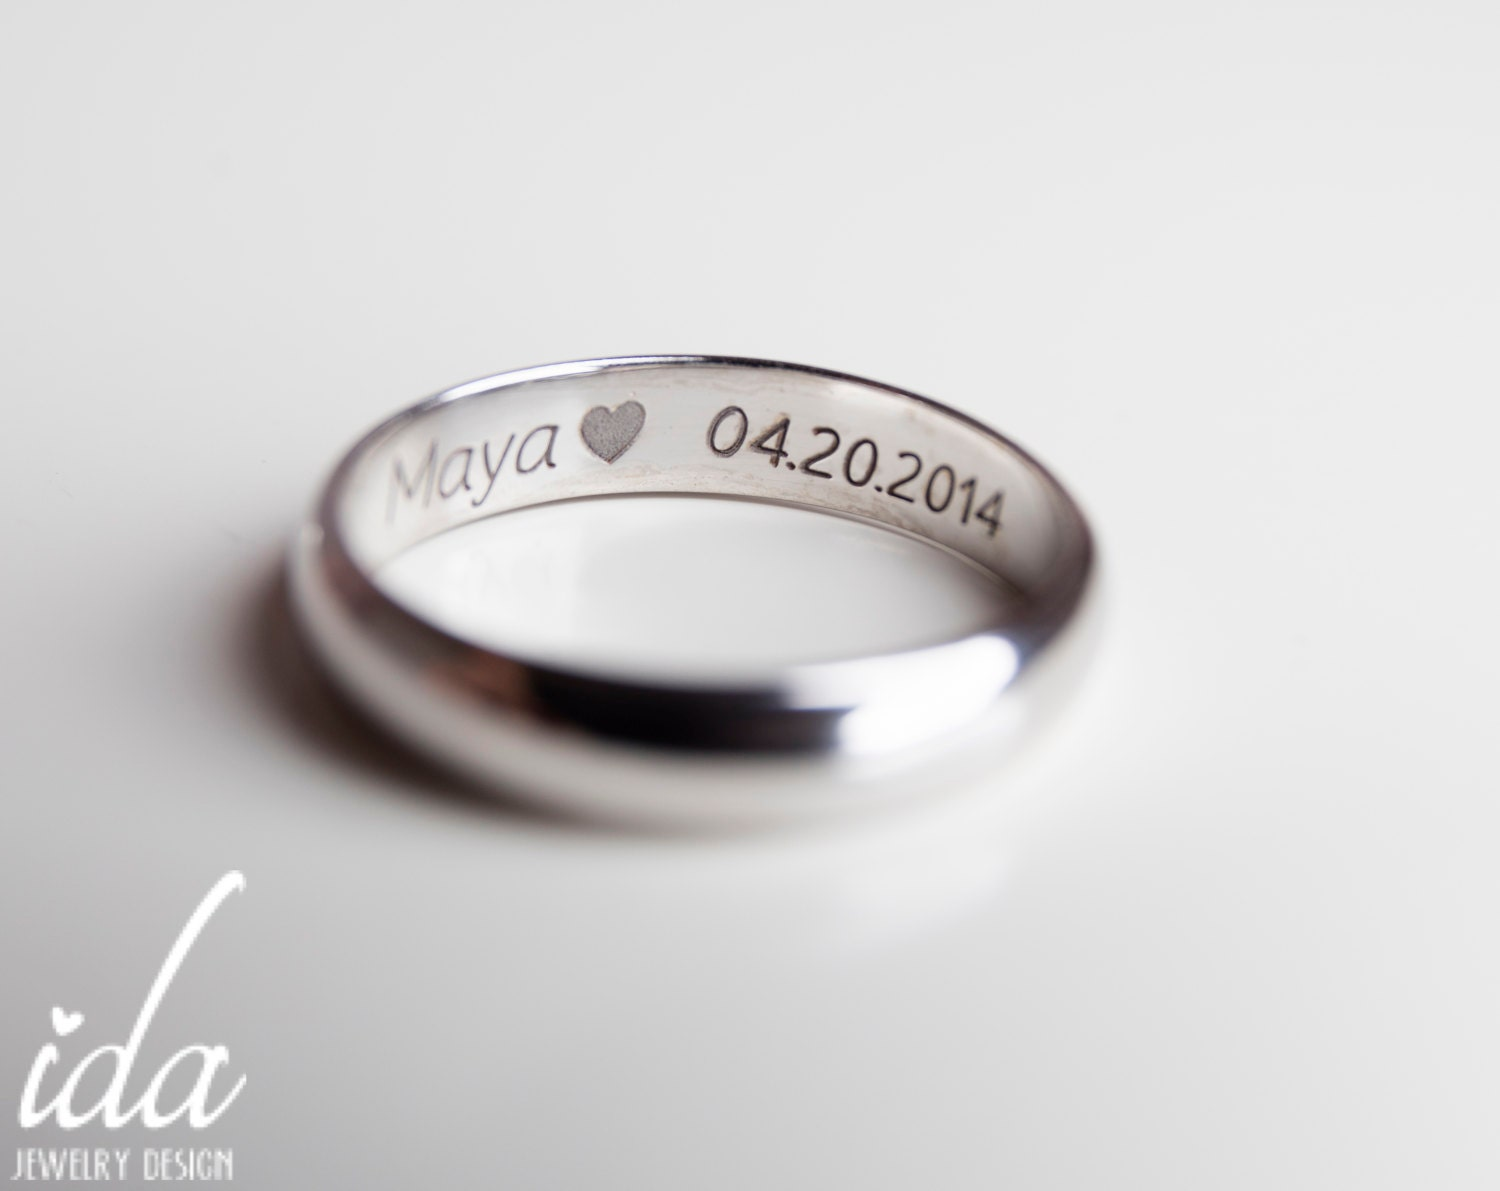 Engraved mens ring wedding band mens silver wedding band for Engraving on mens wedding rings